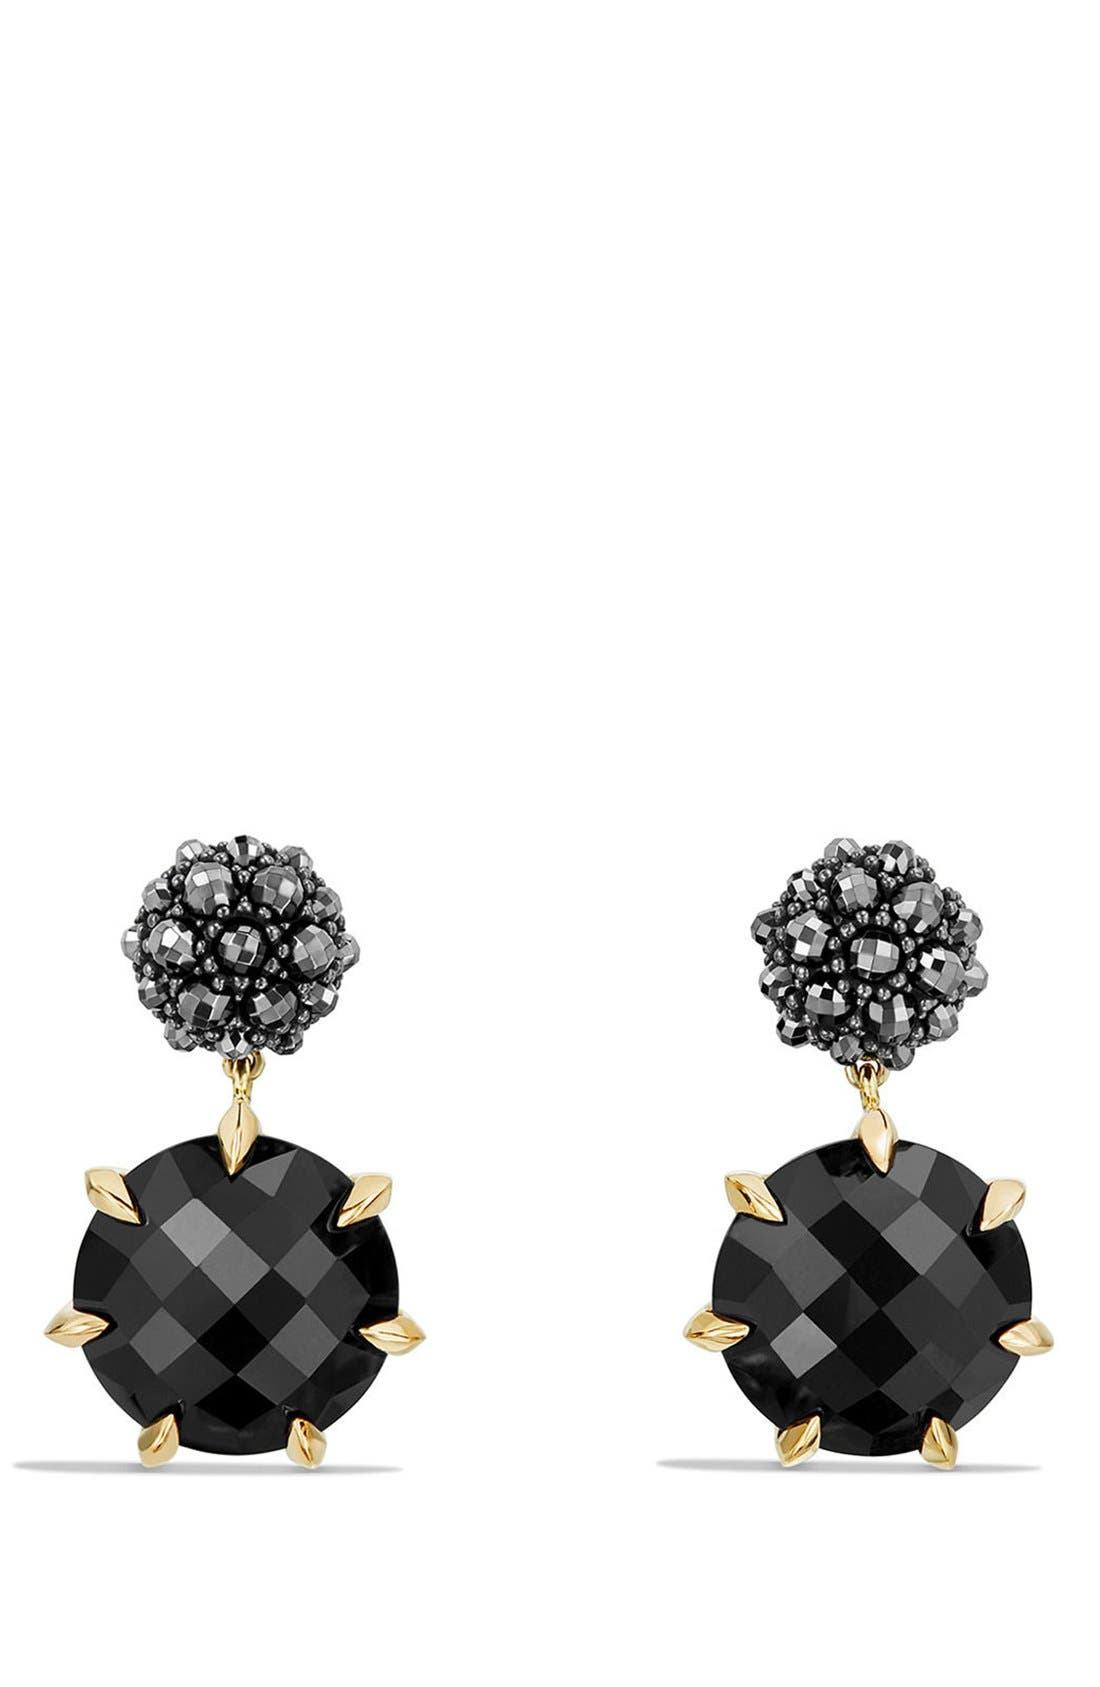 Cable Berries Drop Earrings with 18K Gold,                         Main,                         color, BLACK ONYX/ HEMATINE